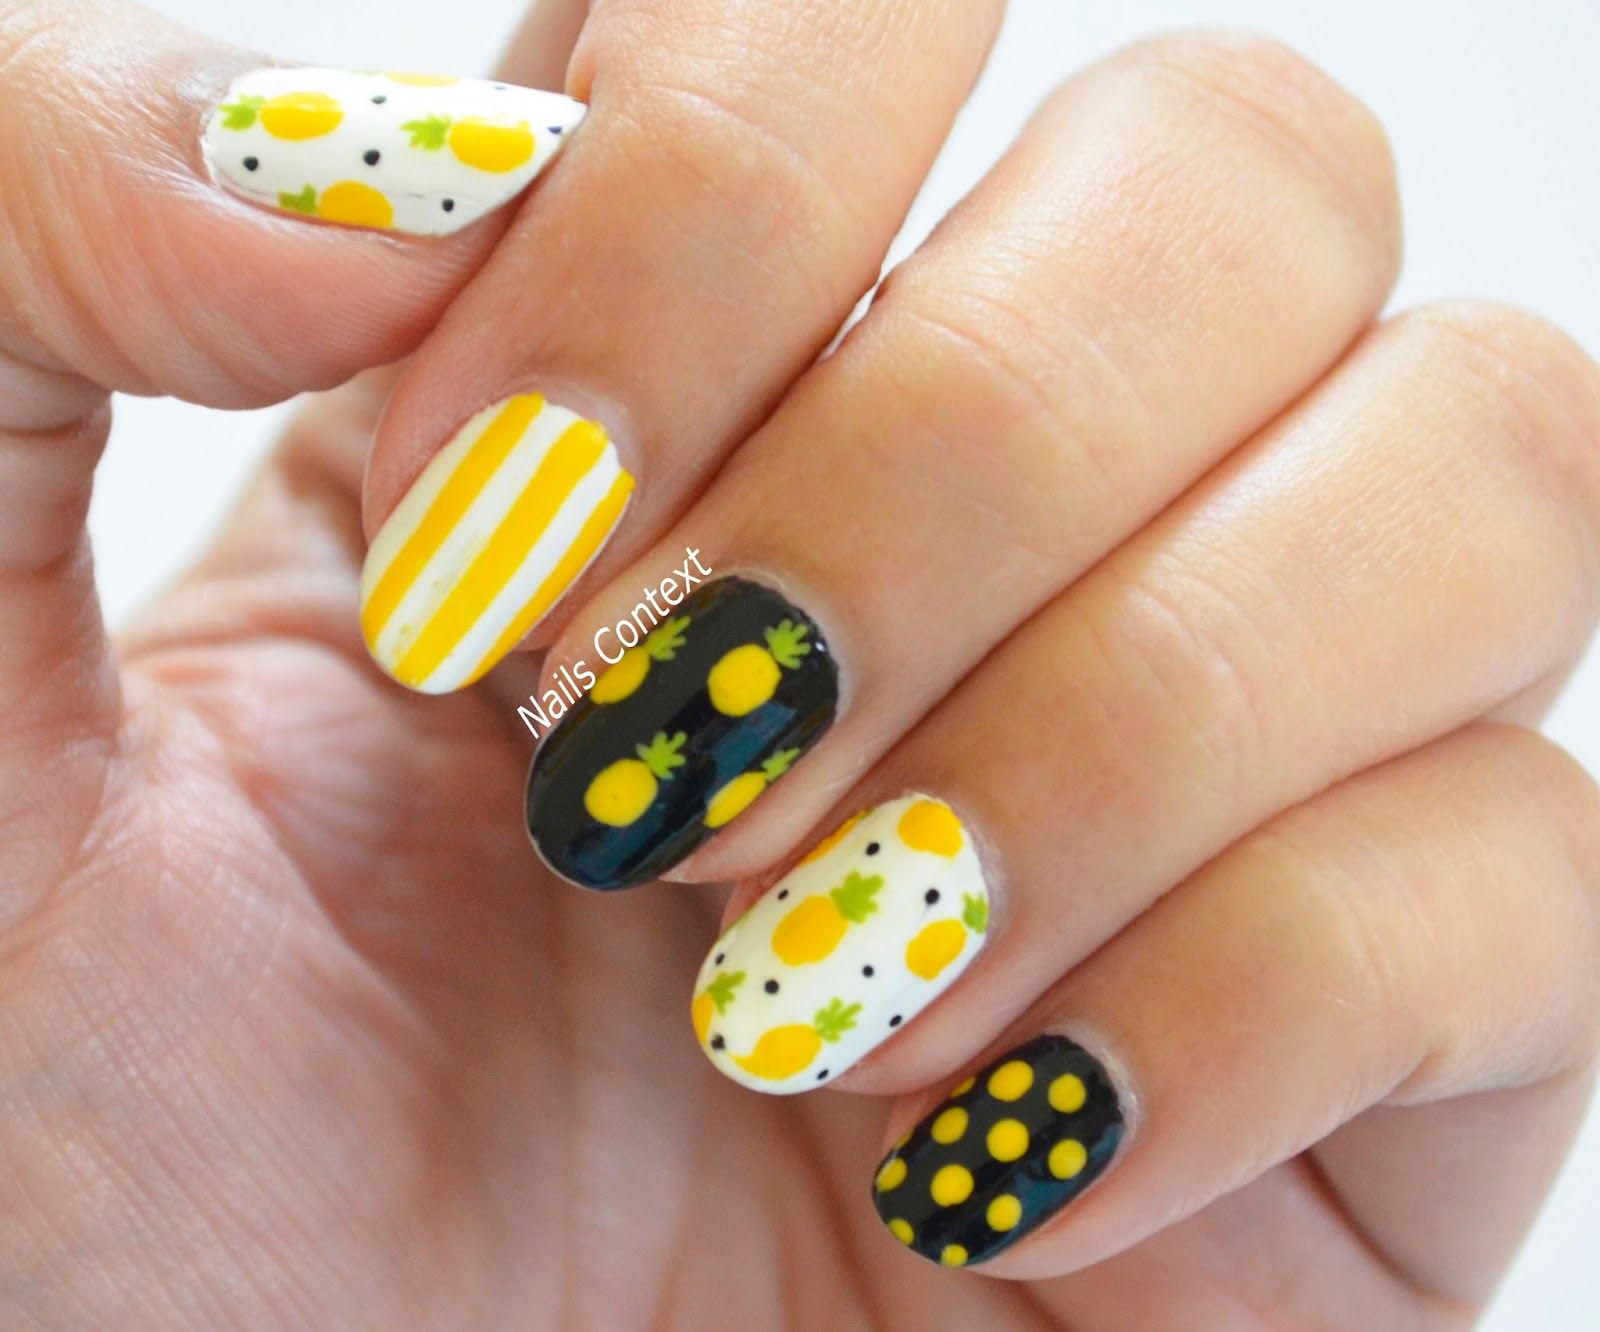 Nails context pineapple nails using fine nail art brushes and added dots using a dotting tool the polishes i used are all zoyas purity willa darcy and tilda prinsesfo Image collections